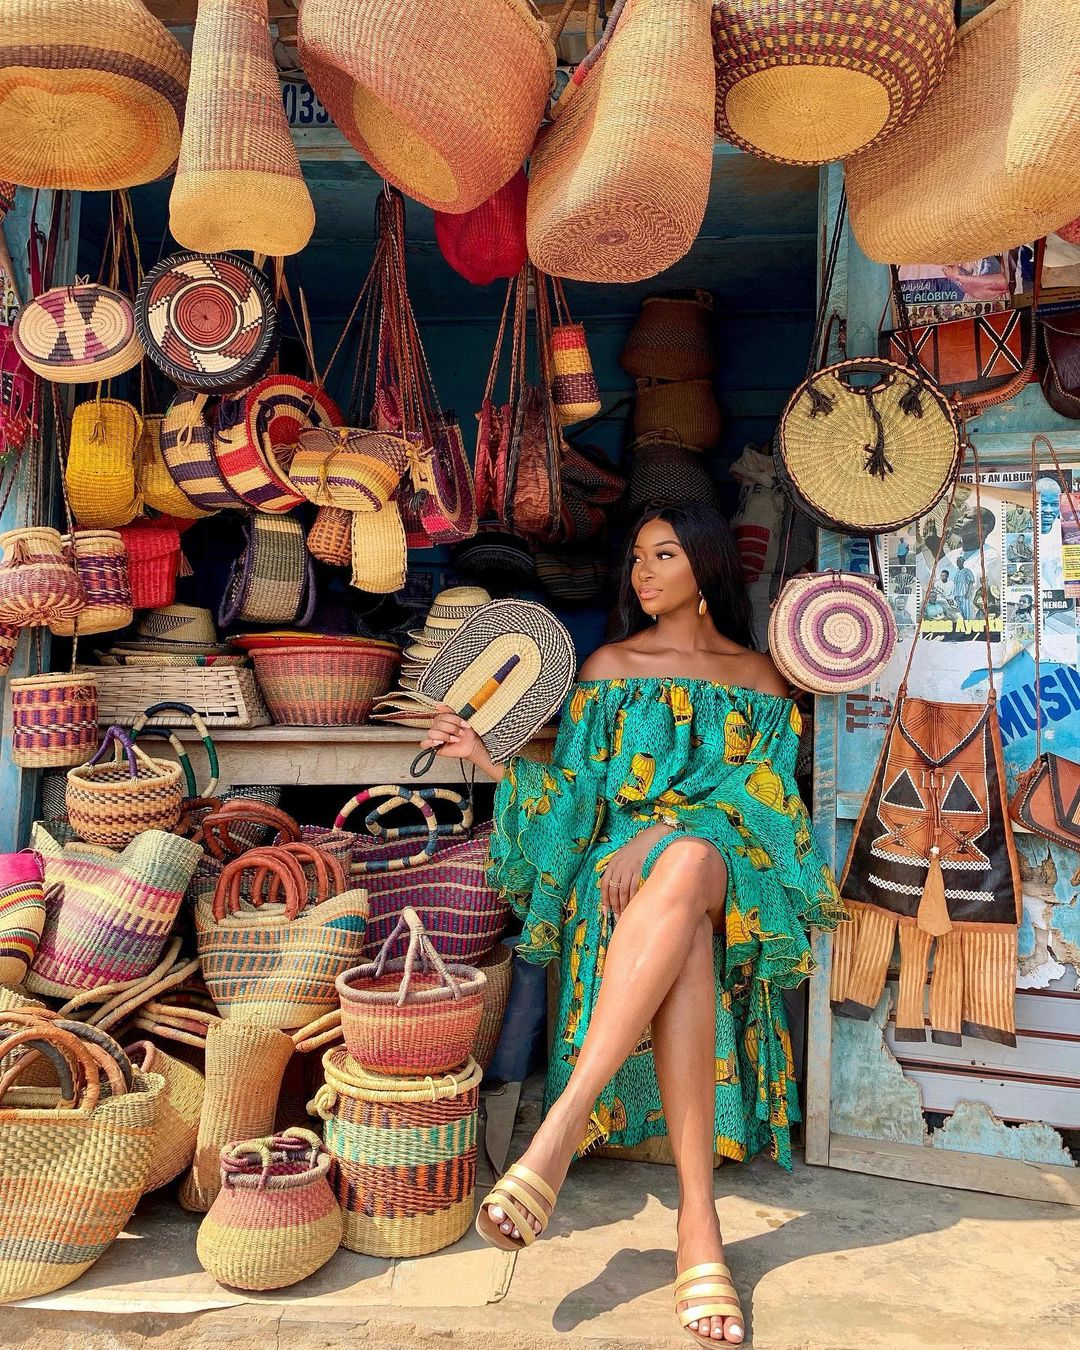 accra Arts and crafts market